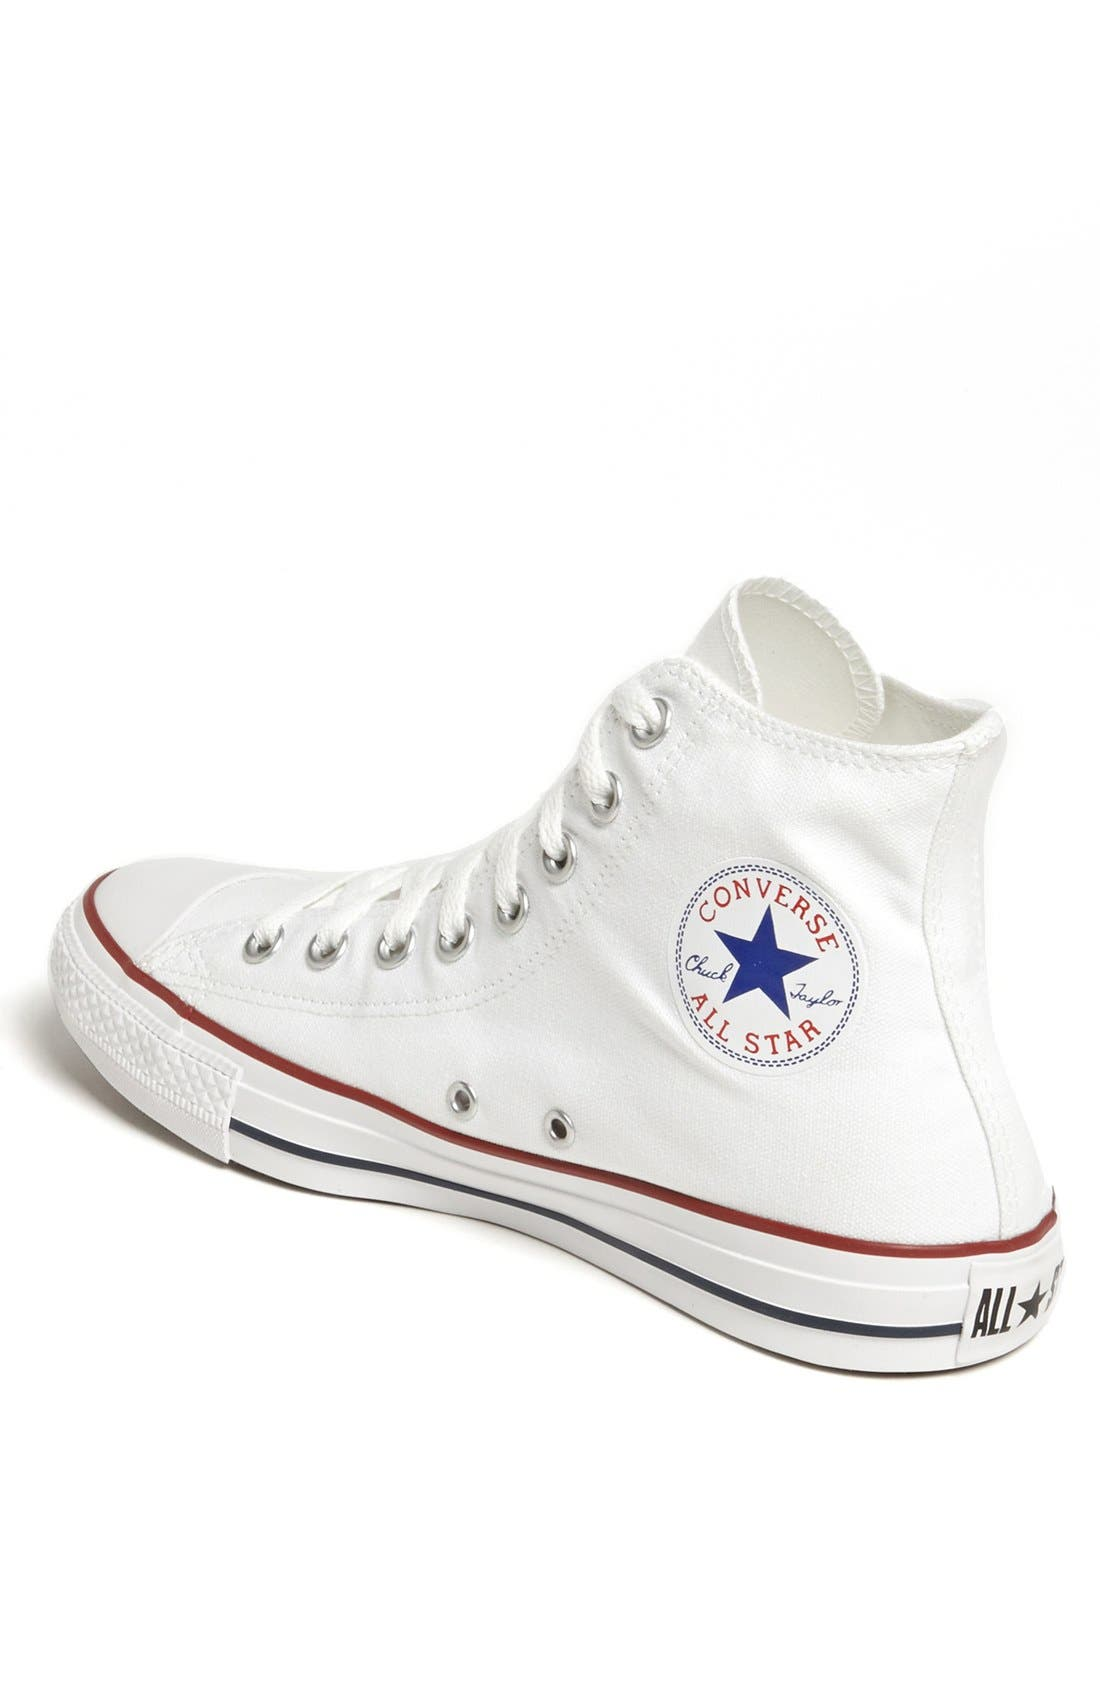 CONVERSE, Chuck Taylor<sup>®</sup> High Top Sneaker, Alternate thumbnail 3, color, OPTIC WHITE